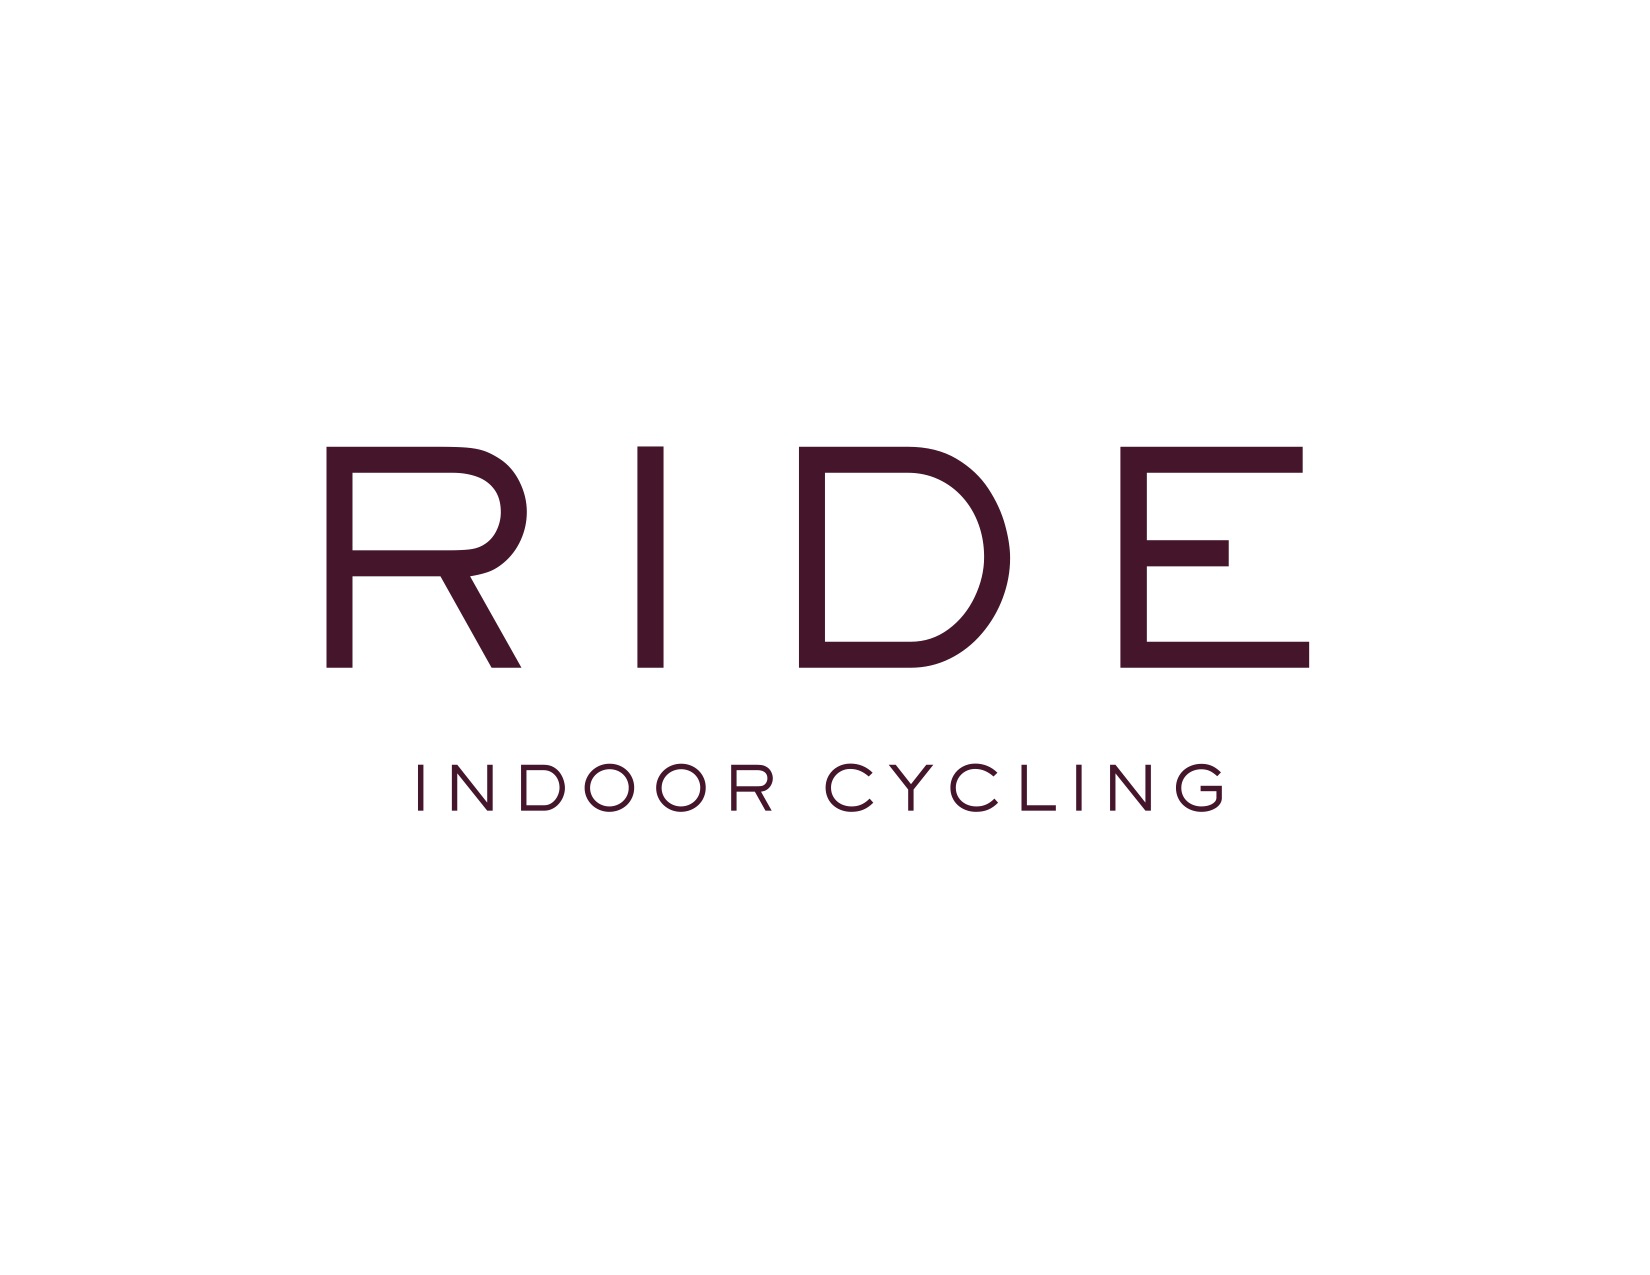 RIDE FINAL LOGO 101216 copy